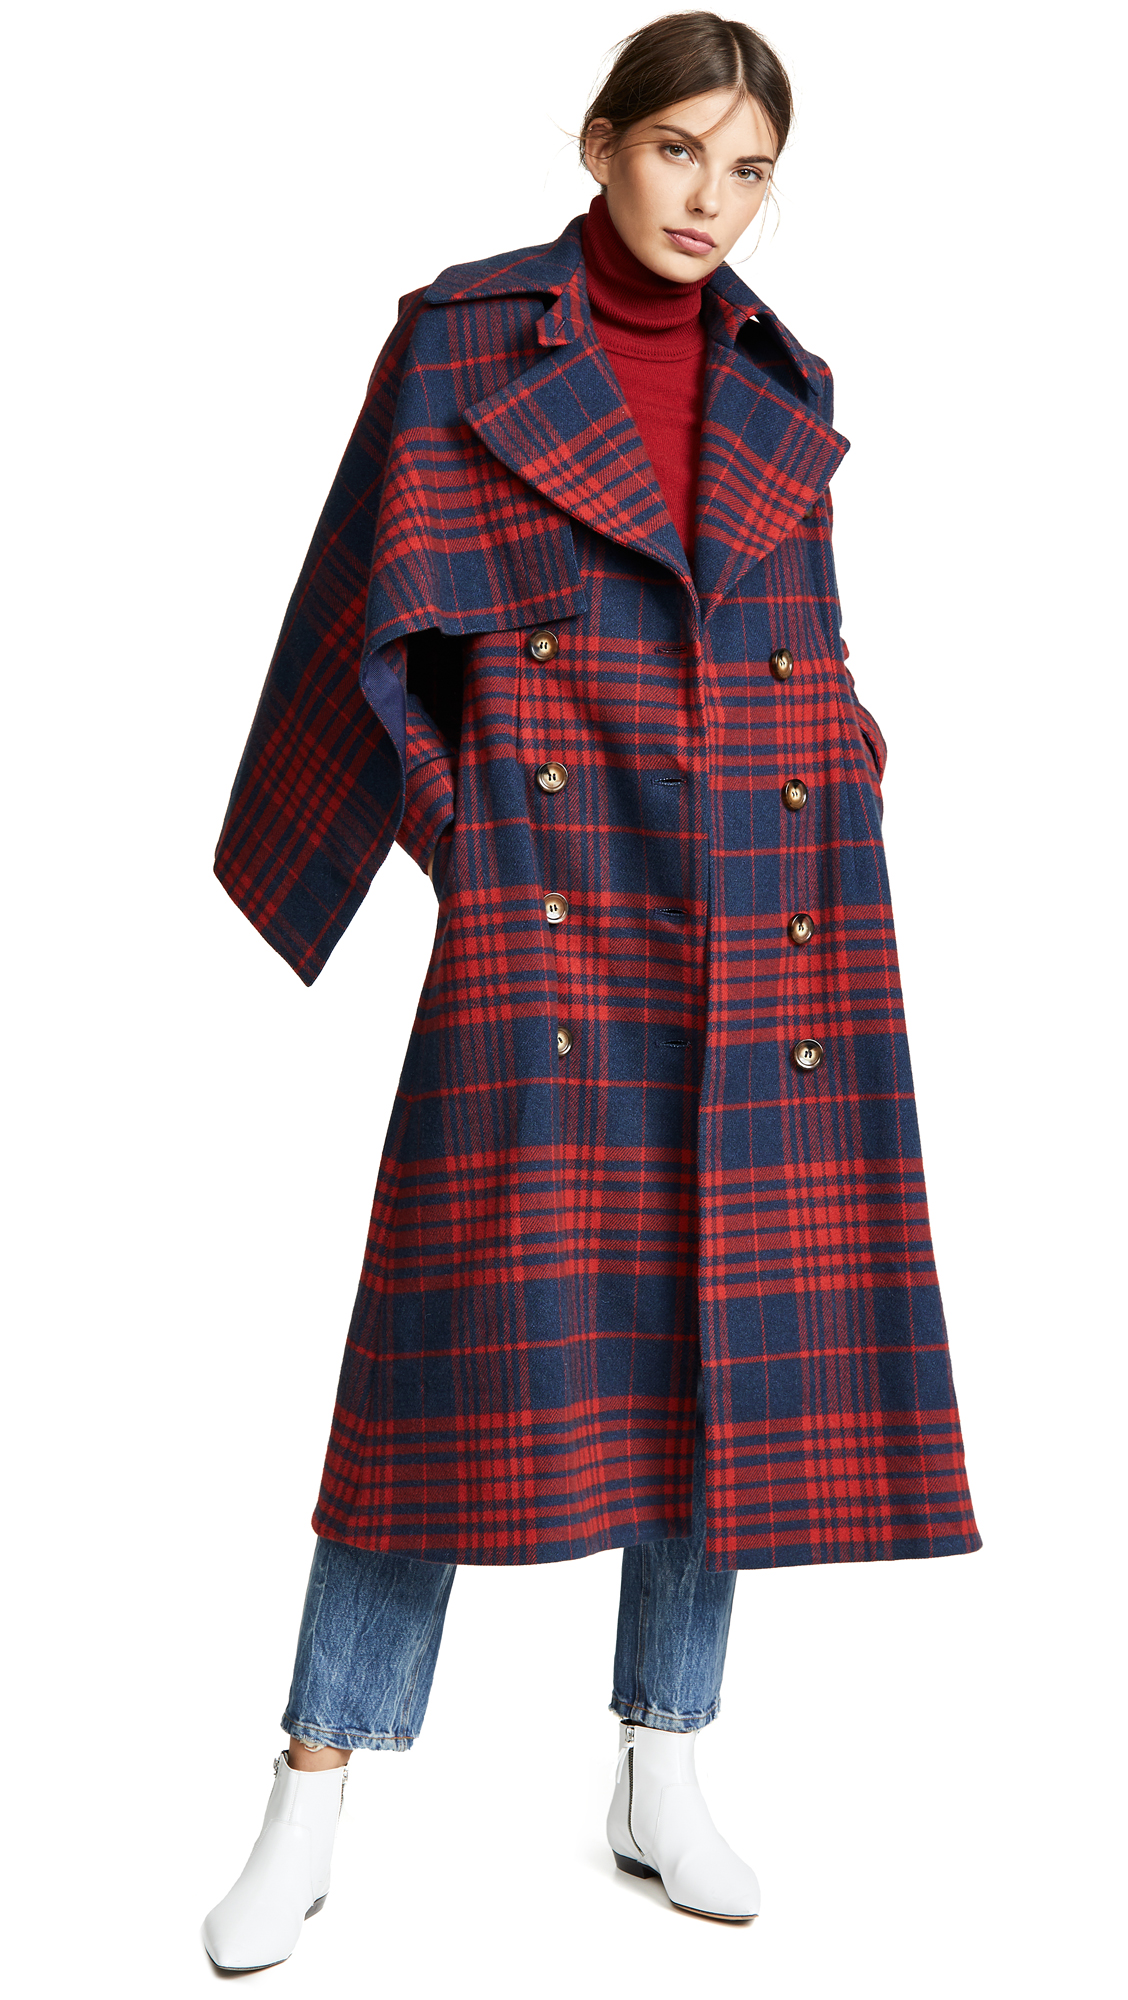 Anna October Plaid Long Coat In Red/Blue